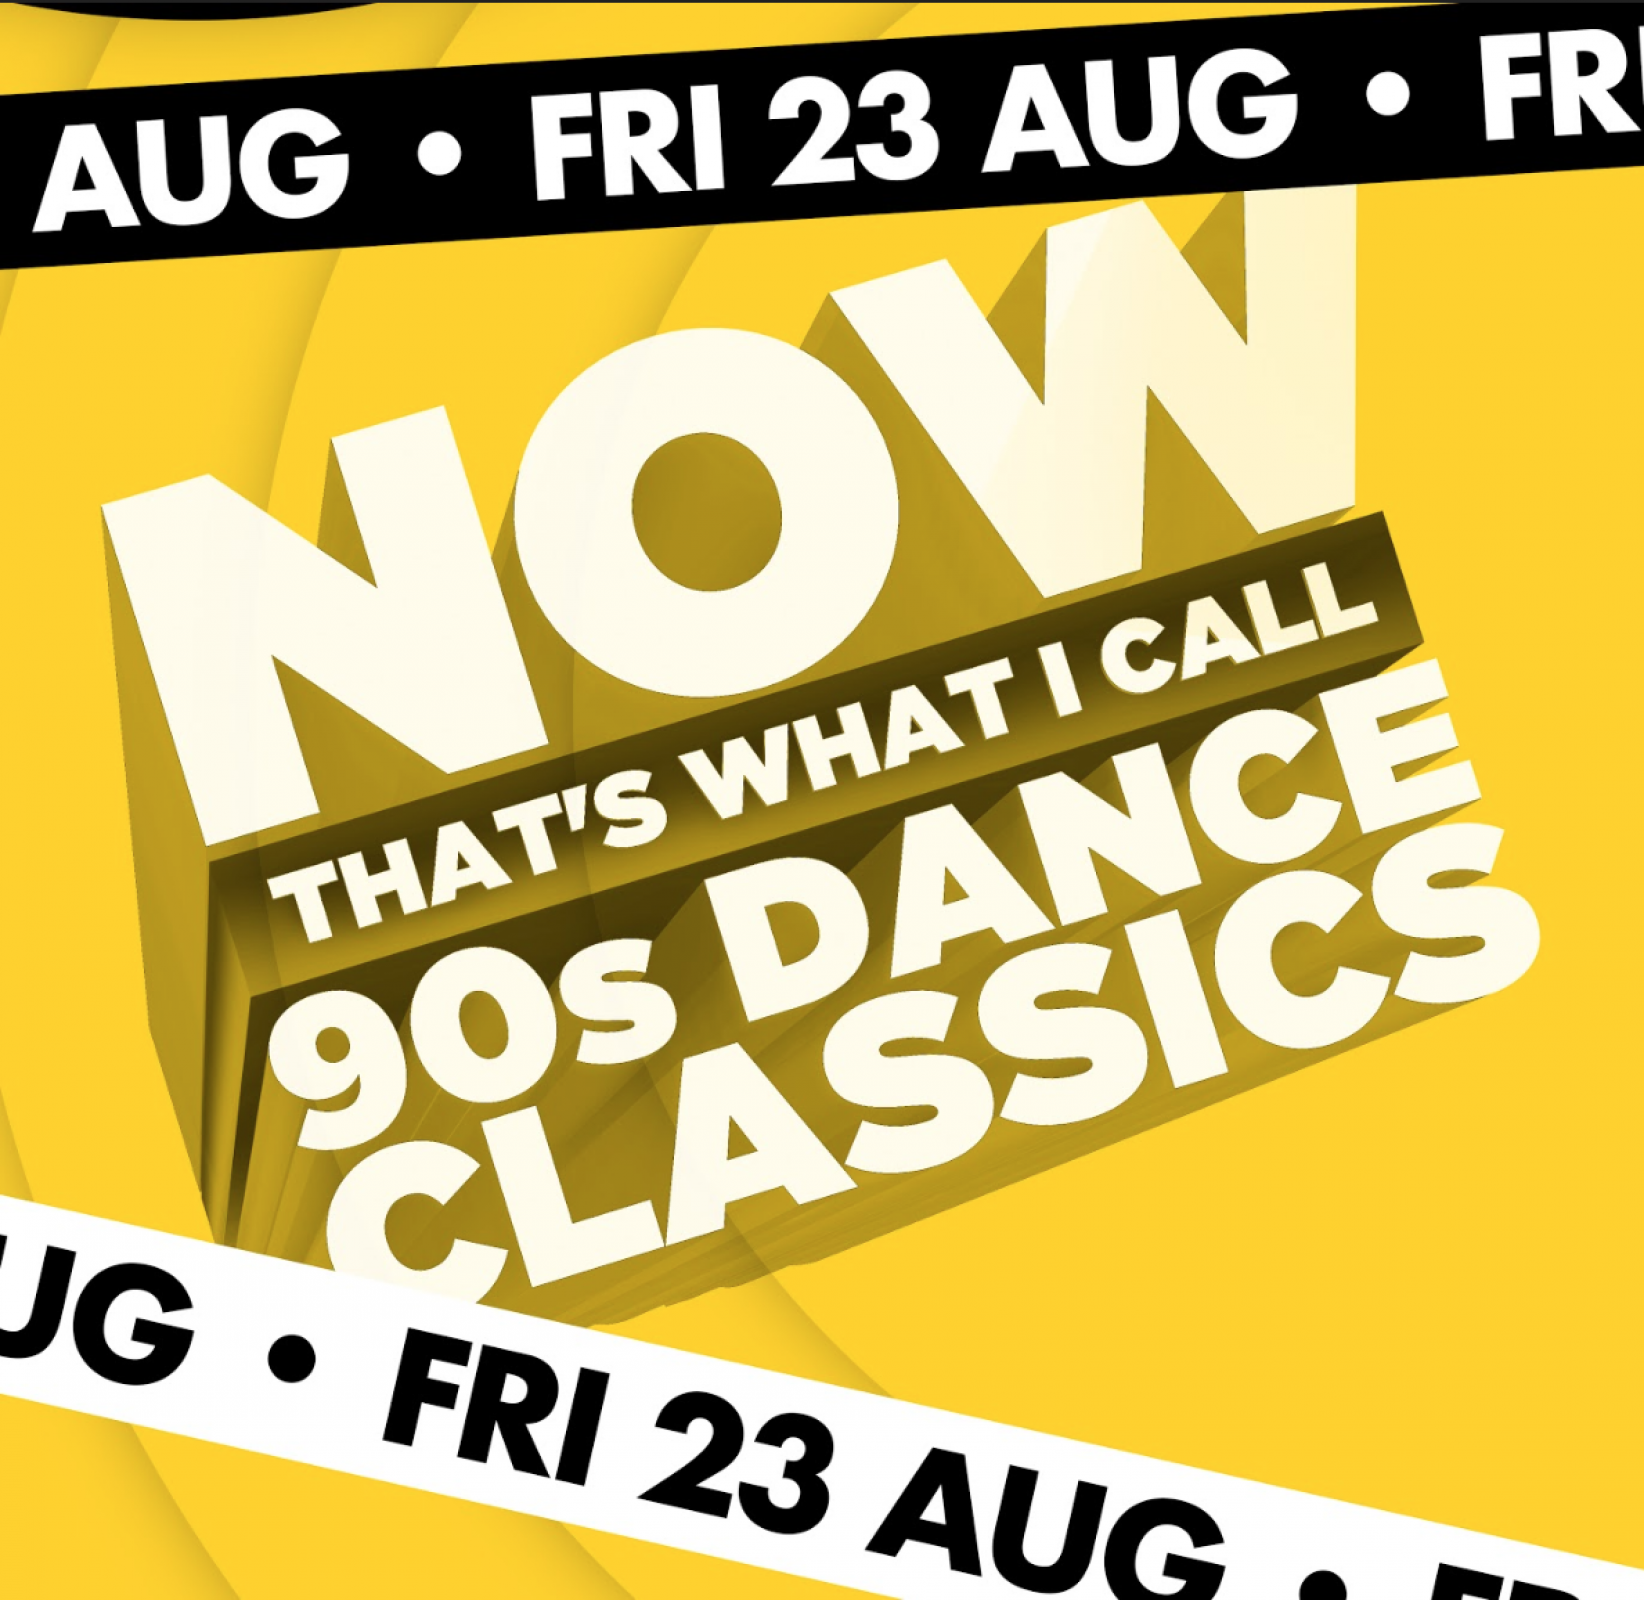 Now That's What I Call: 90's Dance Classics!